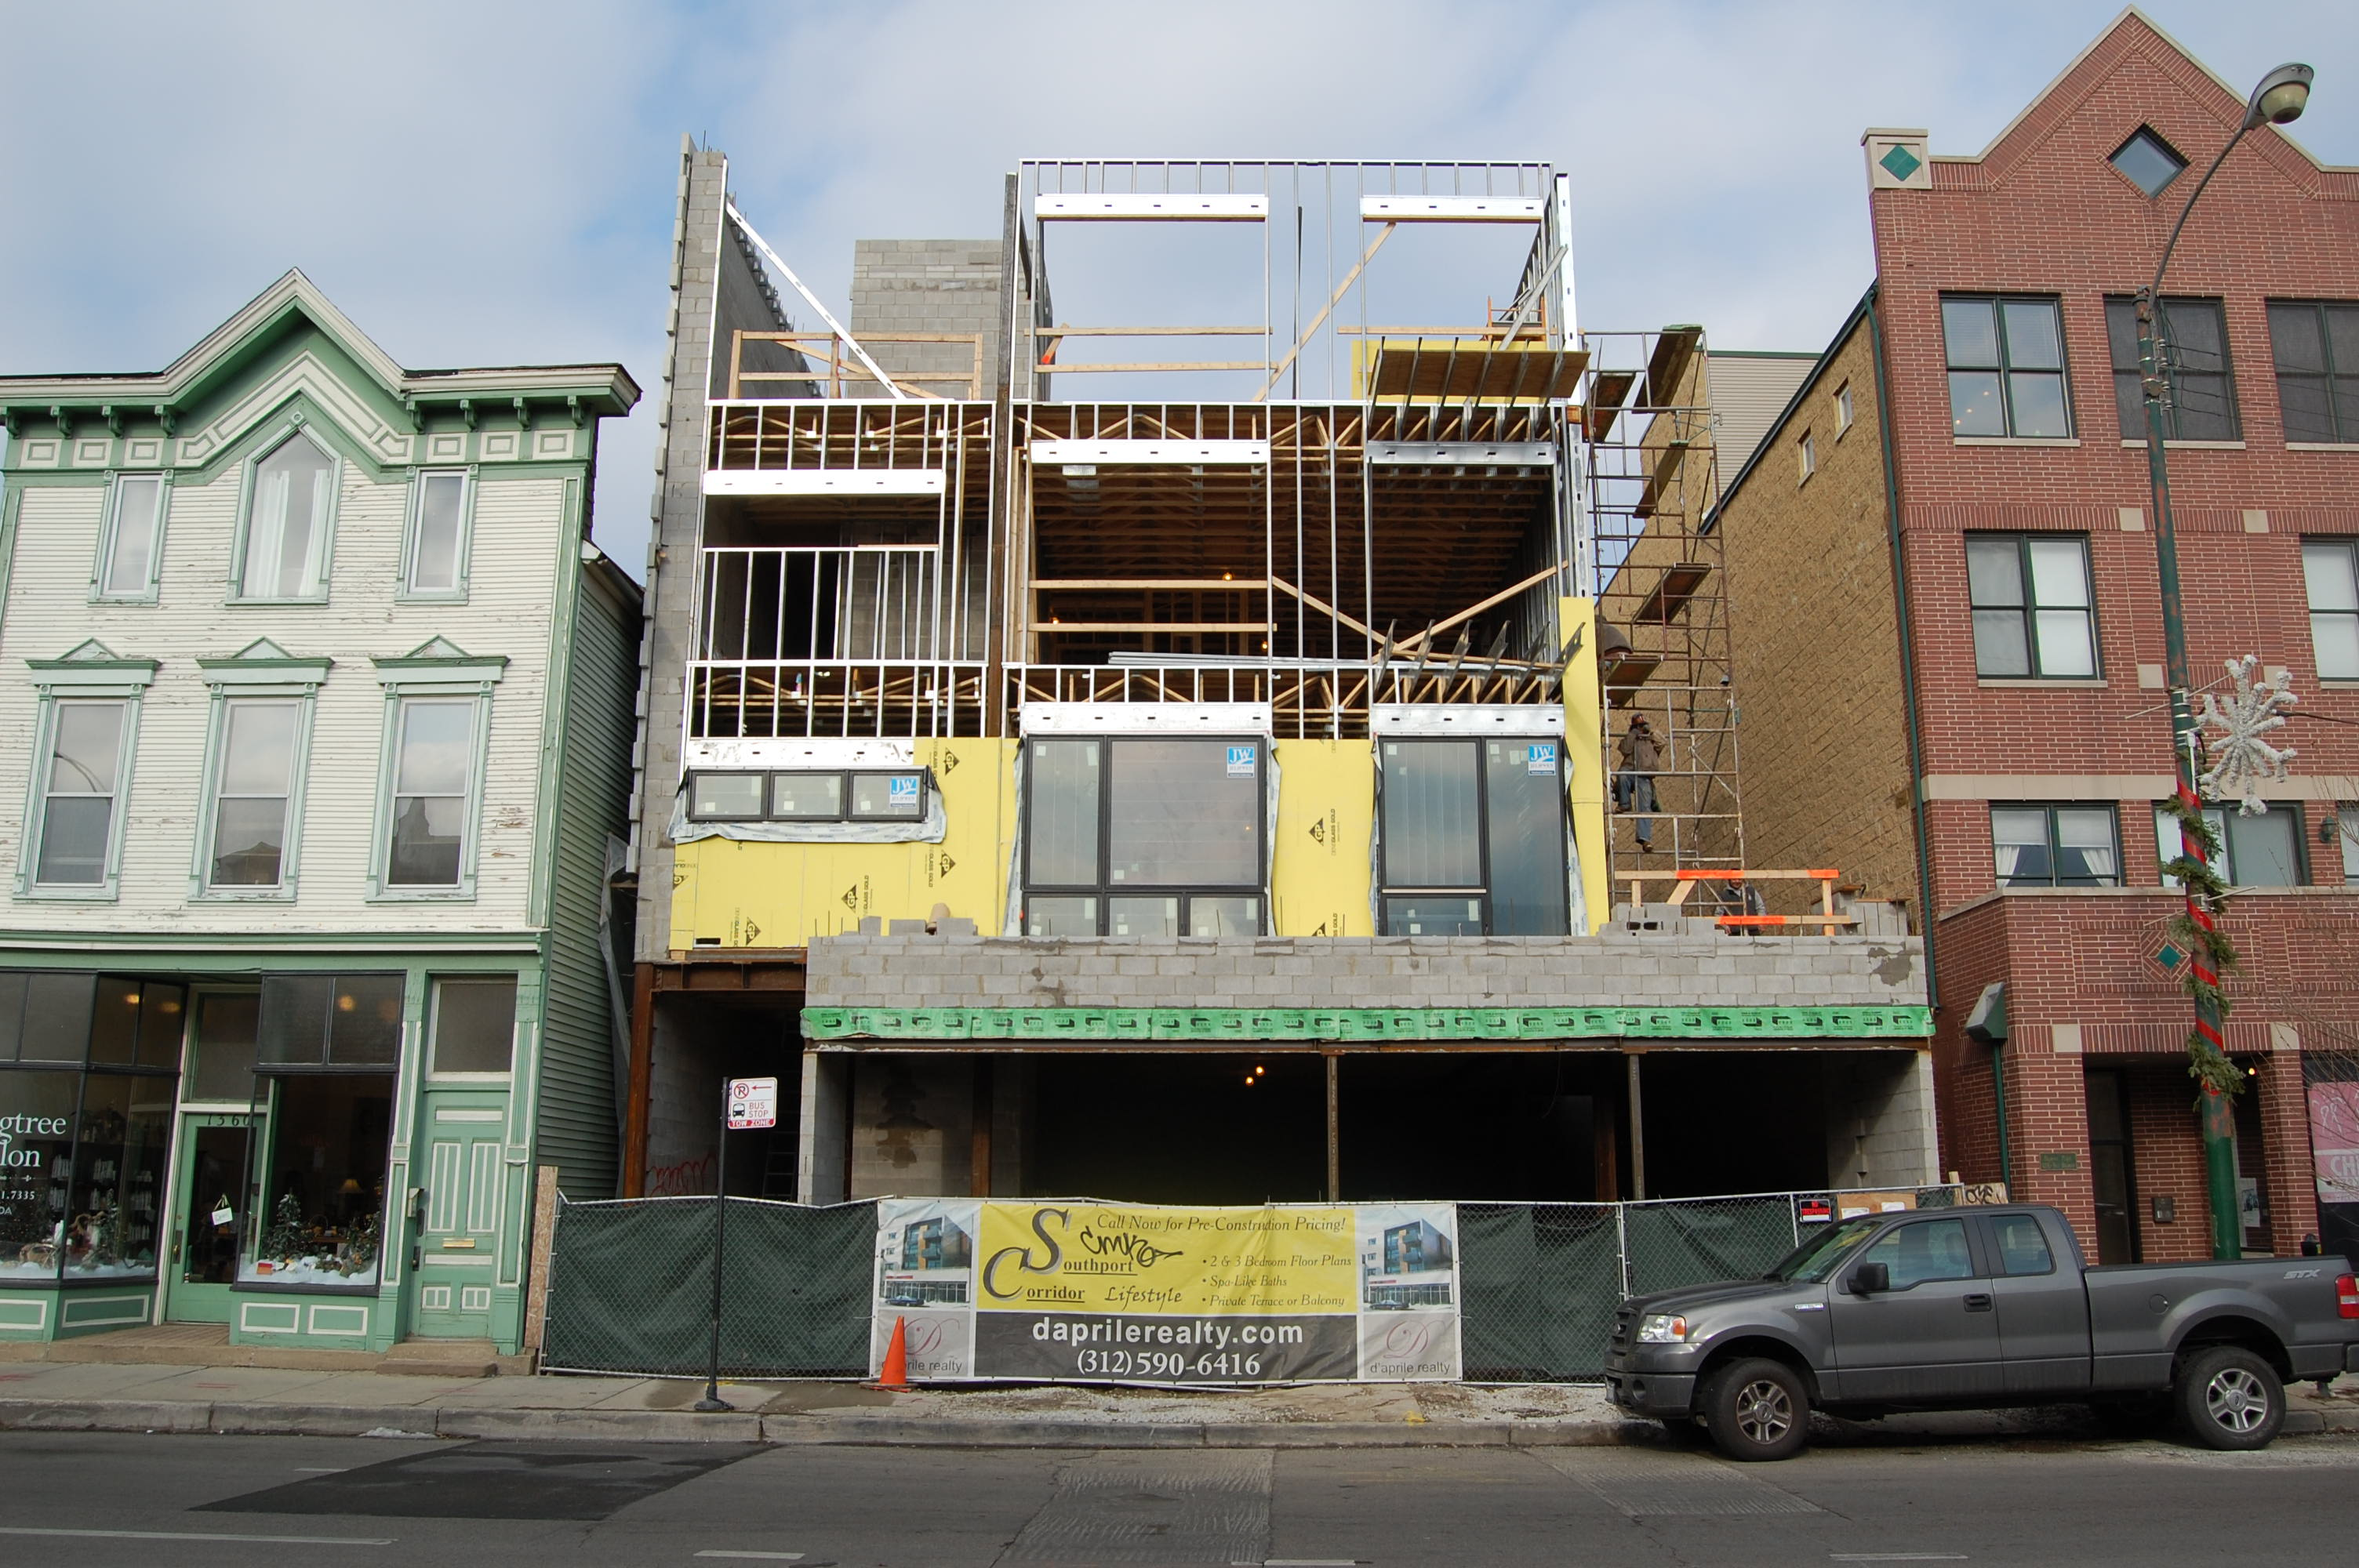 El Pacifico, a new condo development under construction at 1358 W Belmont Ave in Lake View, Chicago